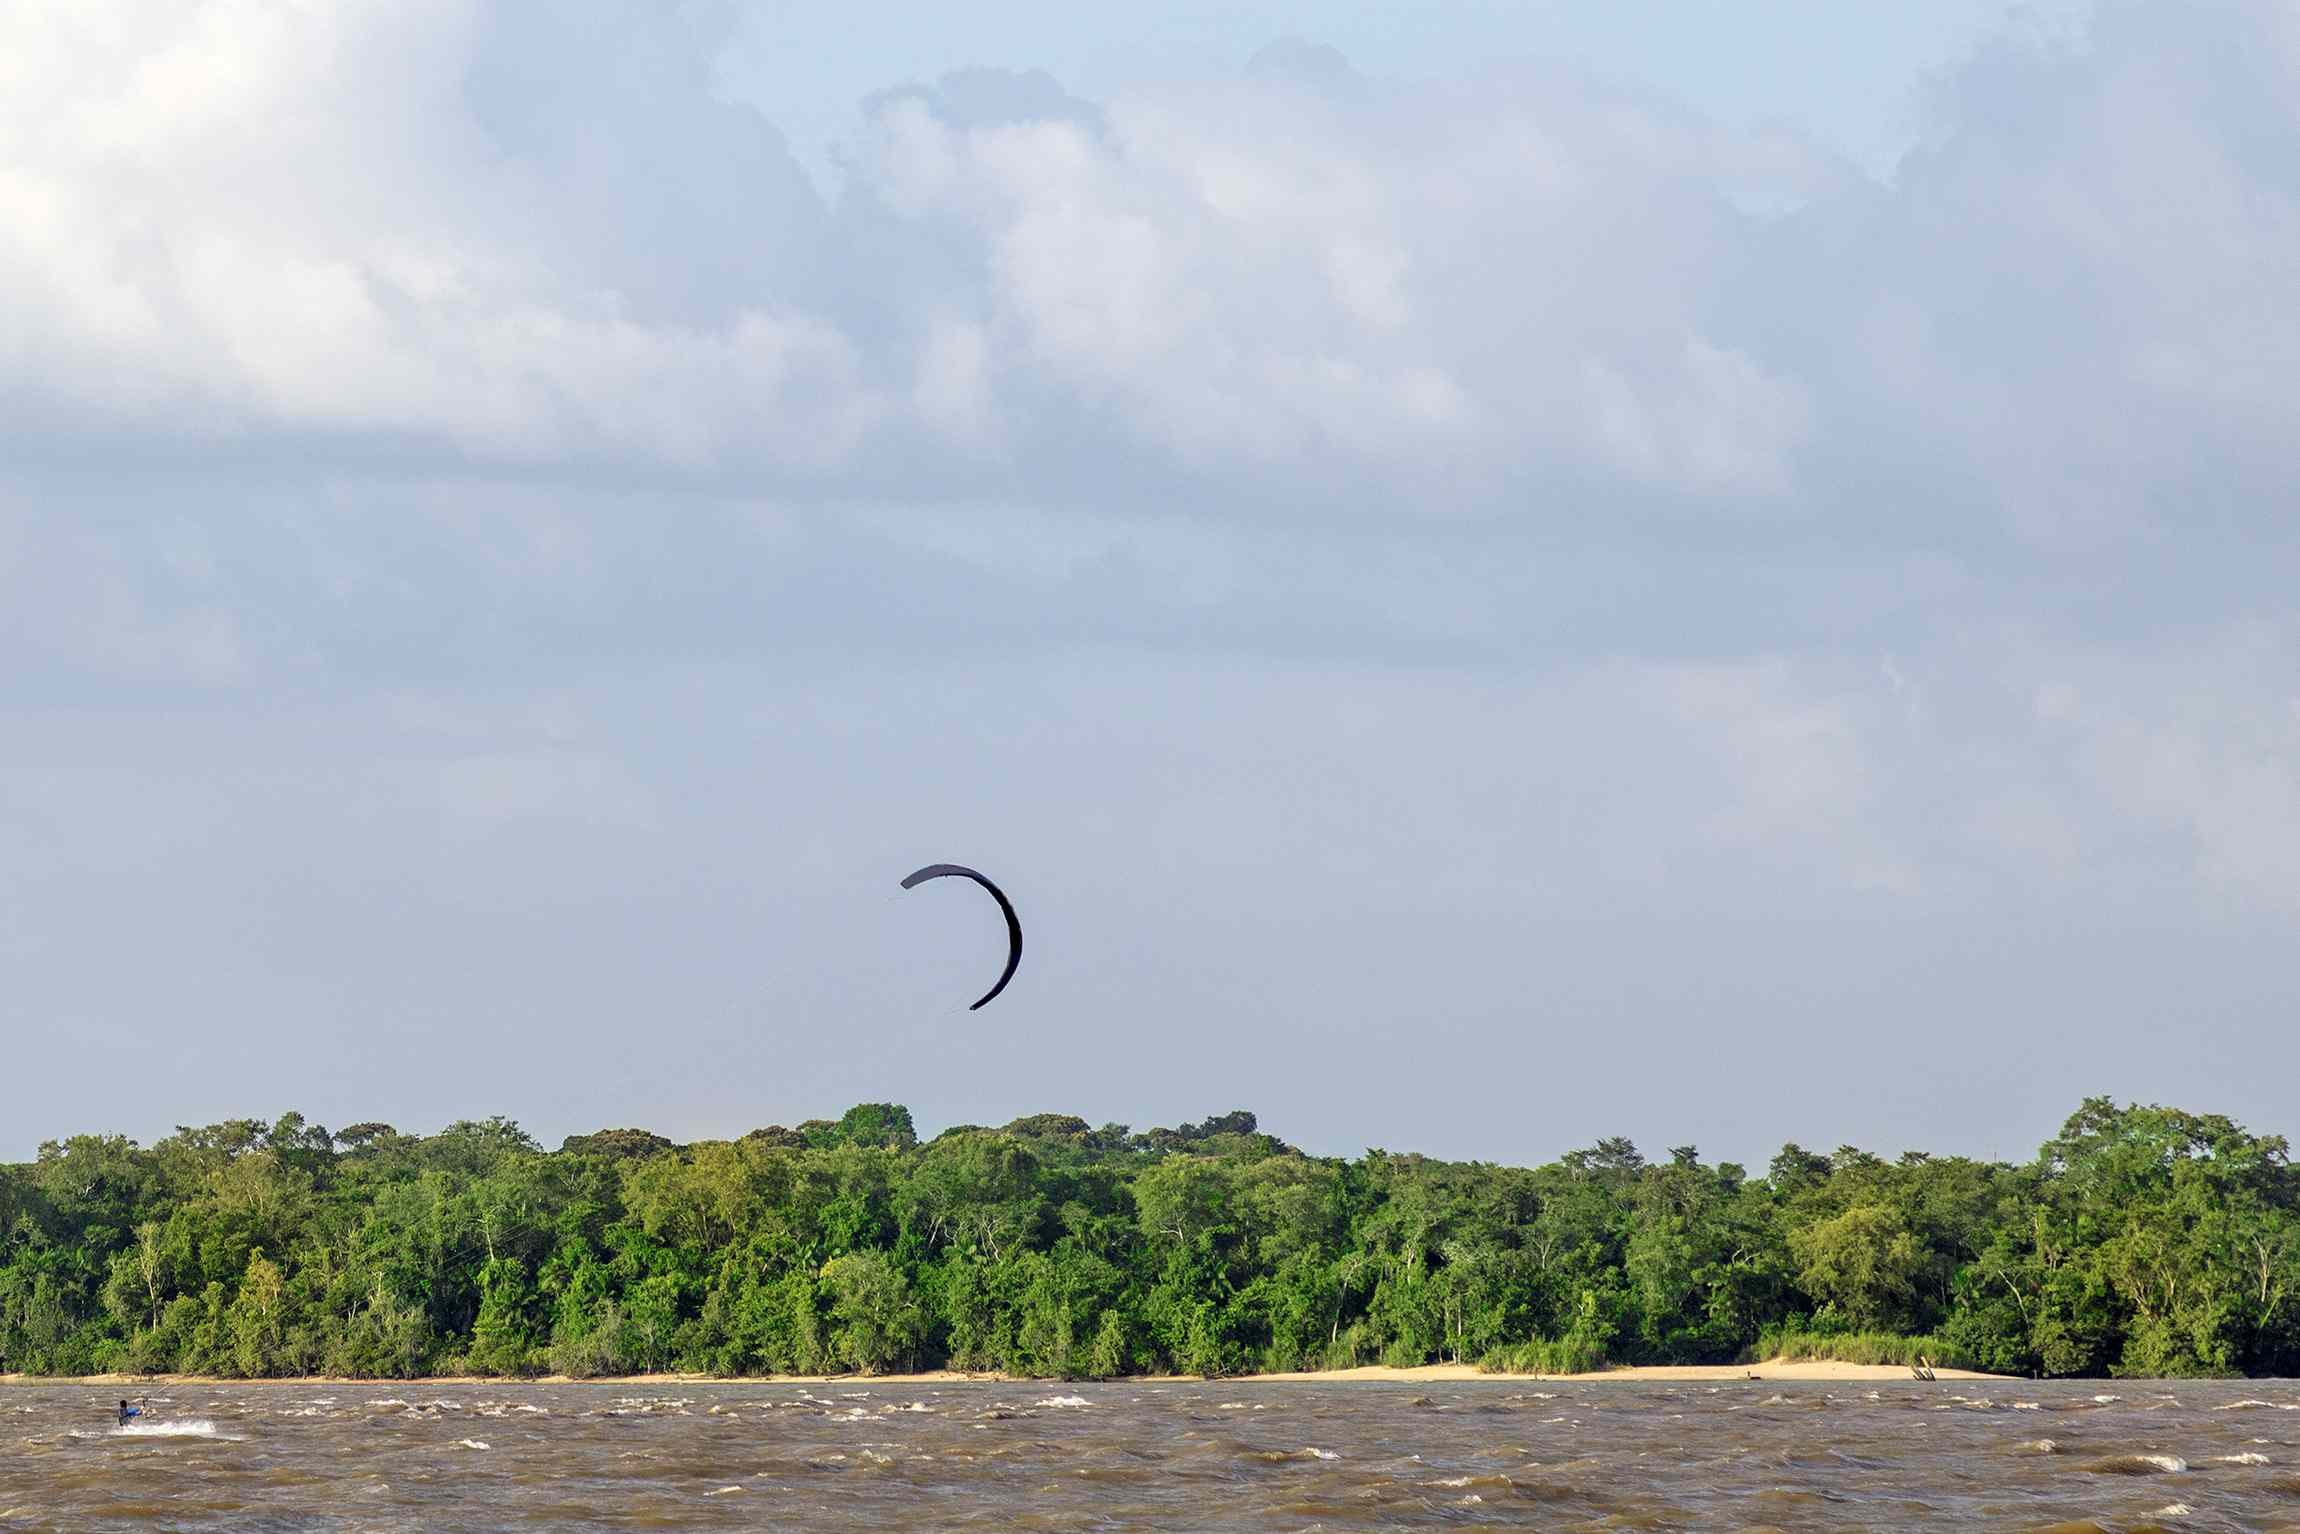 Kite surfer in the dark colored Amazon River with a kite flying above a lush forest of trees under a blue sky with a few white clouds